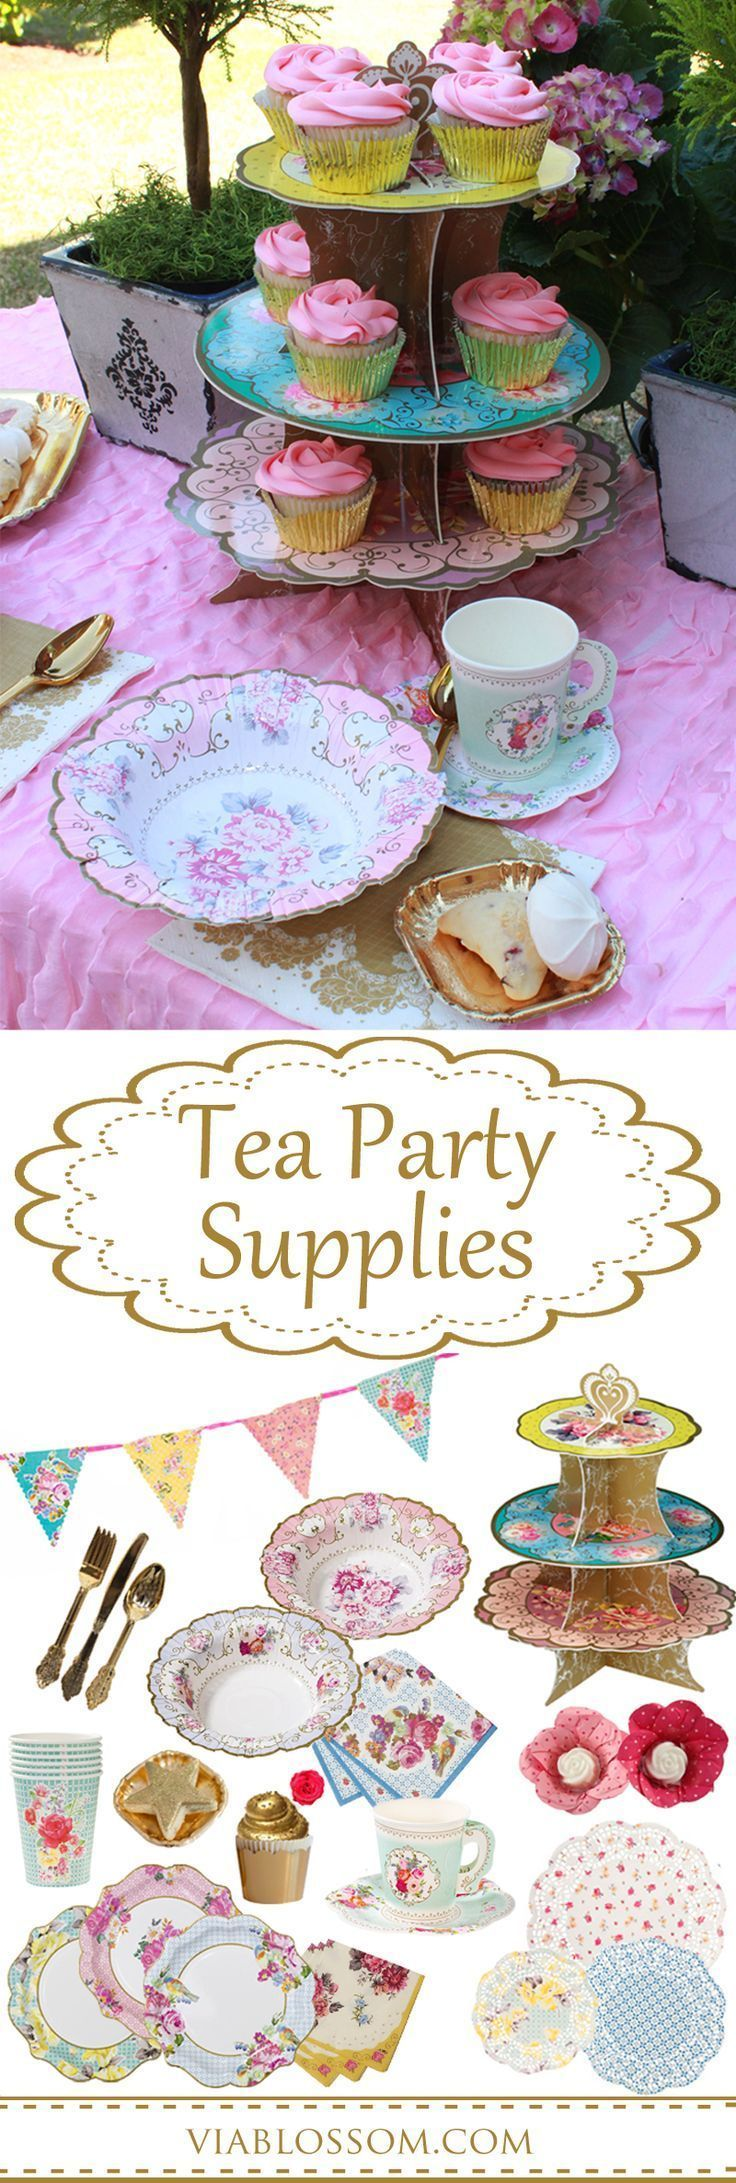 bridal shower teparty decorations%0A The most adorable Tea Party ideas for an afternoon Tea  a girl birthday  party